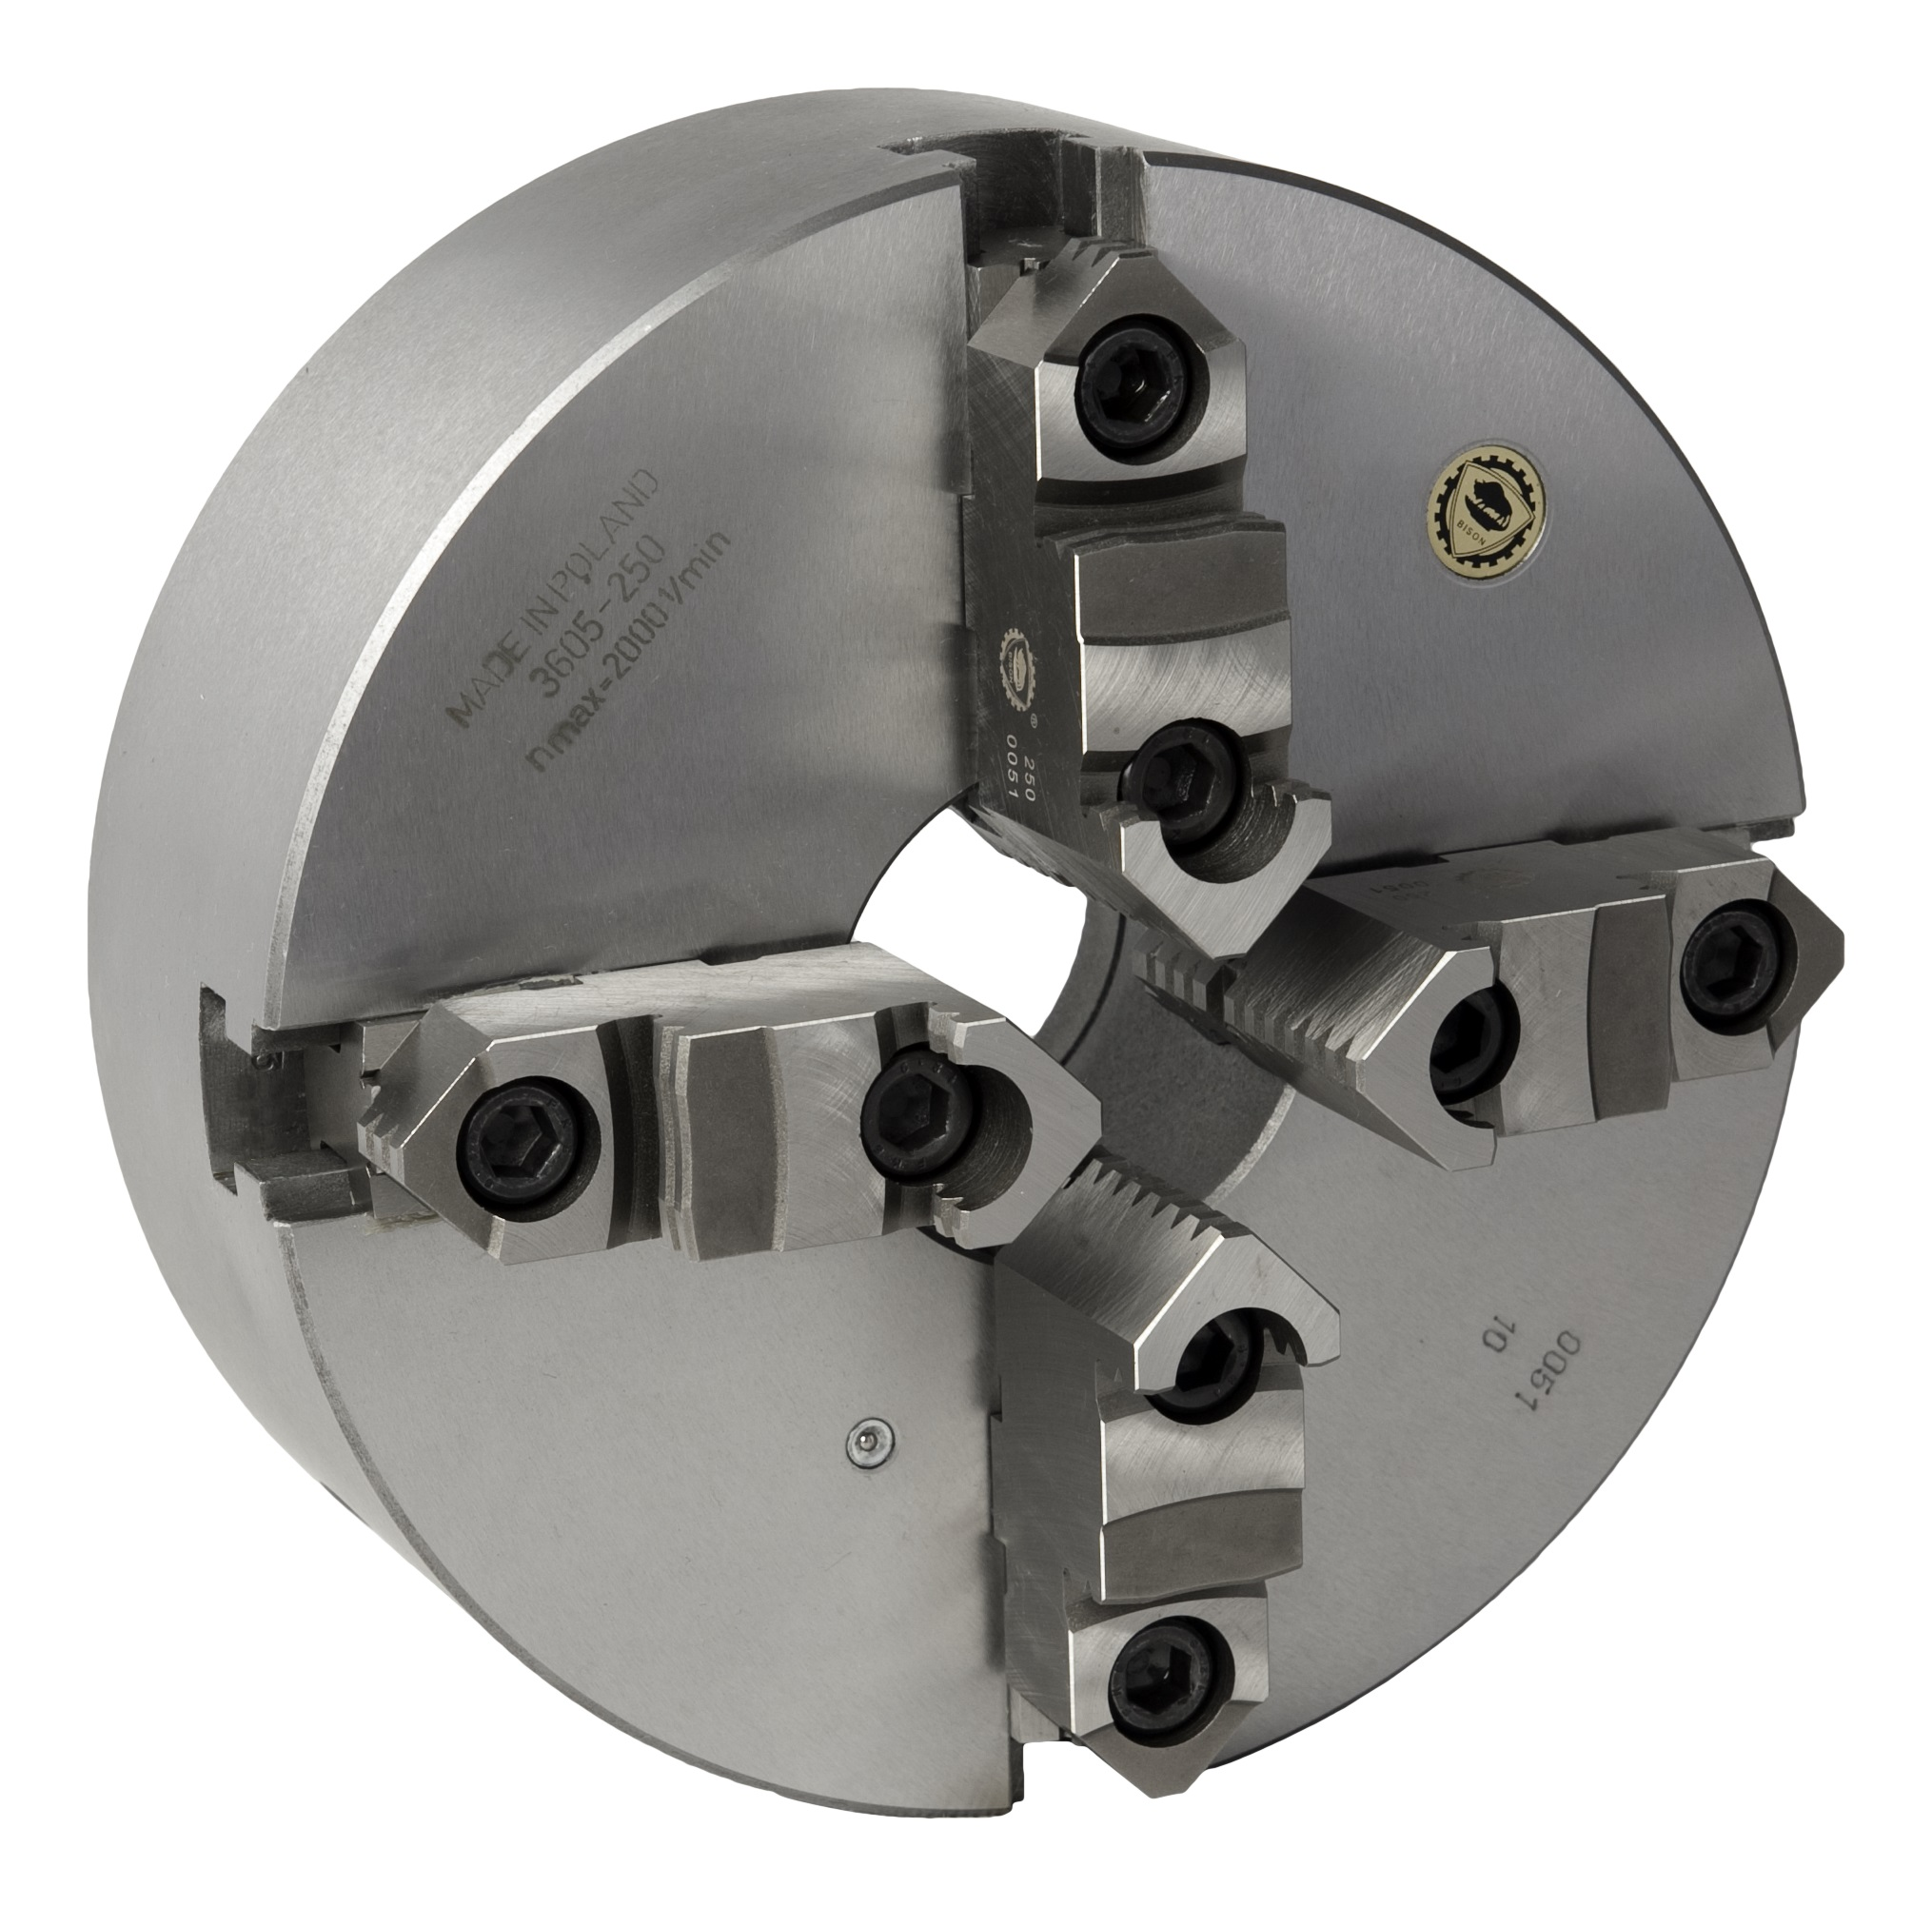 Bison 3605 4-Jaw Cast Iron Self-Centring Scroll Chuck with Plain Back Mounting - DIN 6350.